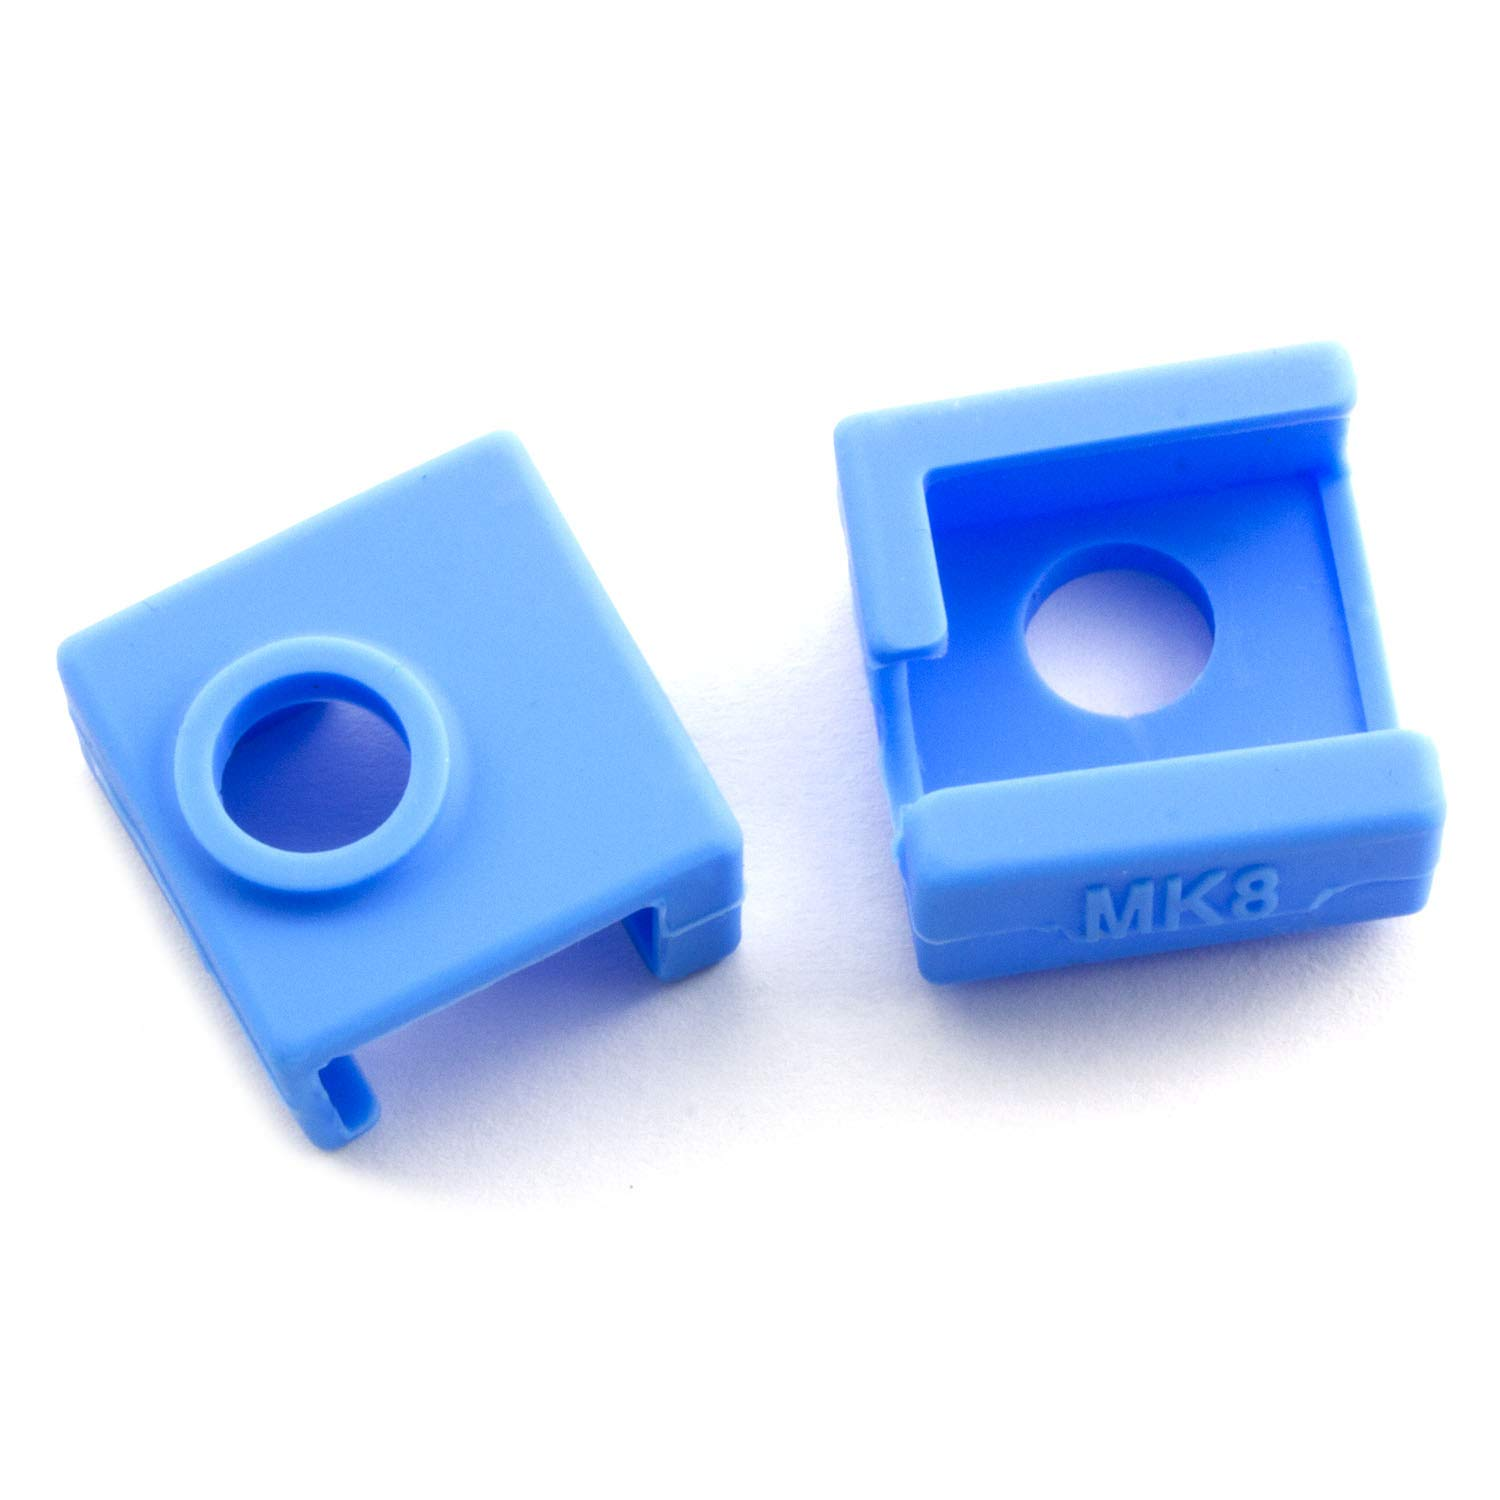 RuiLing 3pcs Blue Silicone Cover for 3D Printer MK7//8//9 Aluminum Heating Block High Temperature Resistance V6 J-Head Hotend Extruder Silicone Insulation Socks